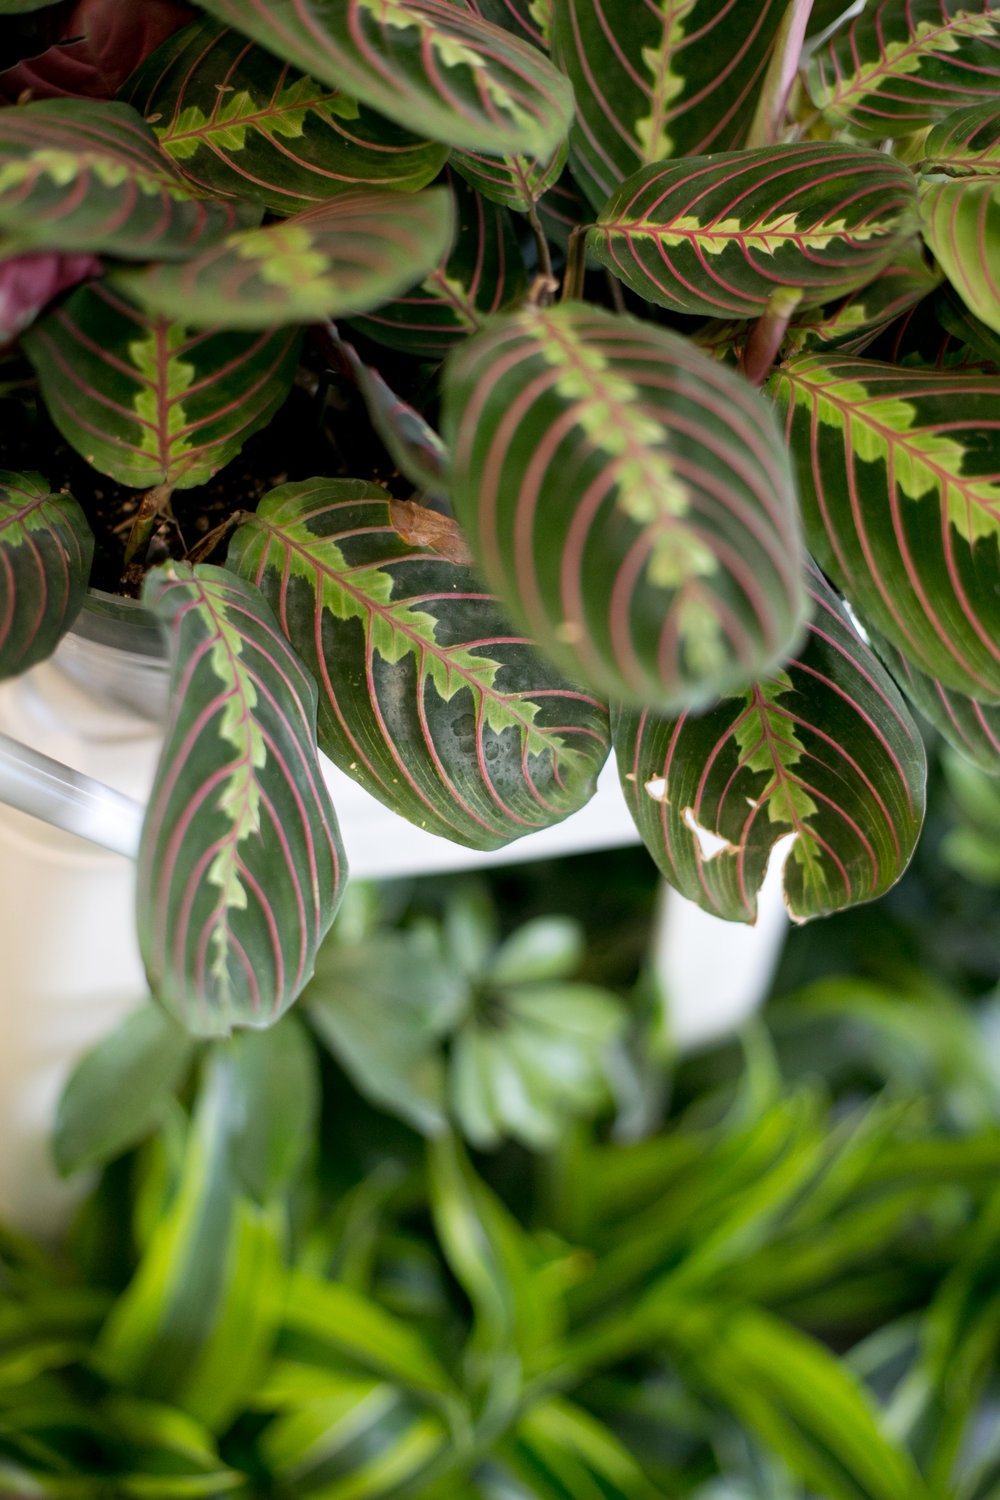 Prayer plants (shown here:  Maranta leuconeura var. erythroneura ) are great gifts for experienced plant moms.  We carry several varieties to choose from, all with unique foliage that adds visual interest to any space.